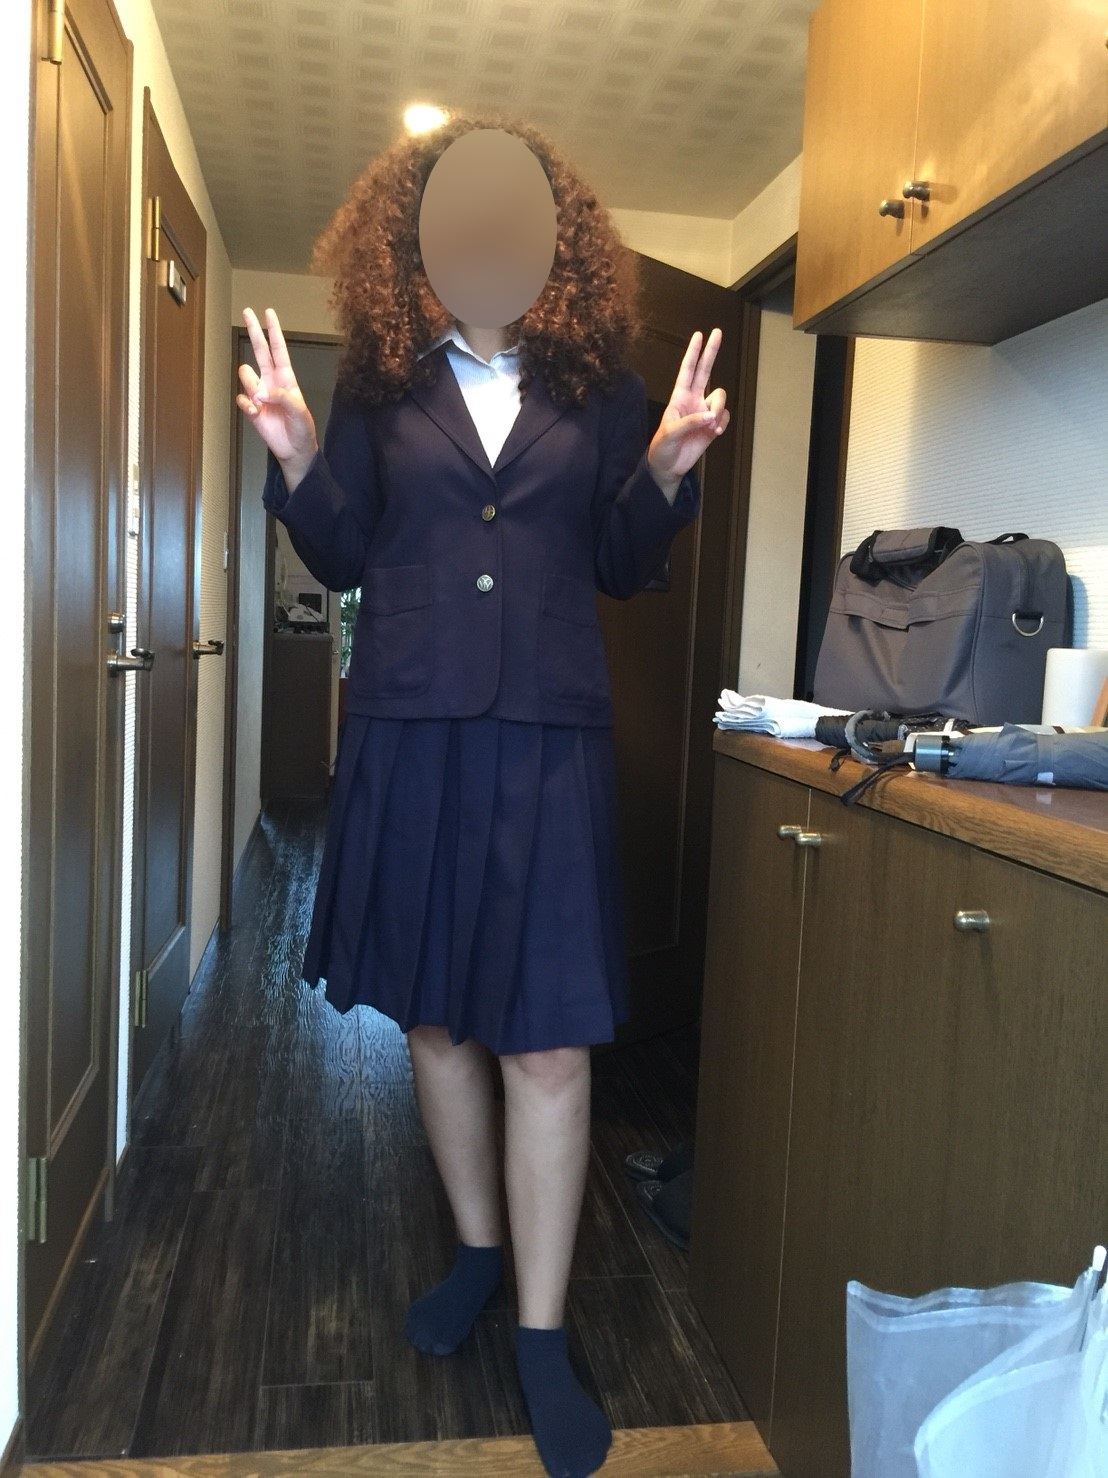 7 Me in a schooluniform - yes, you finally can see the picture